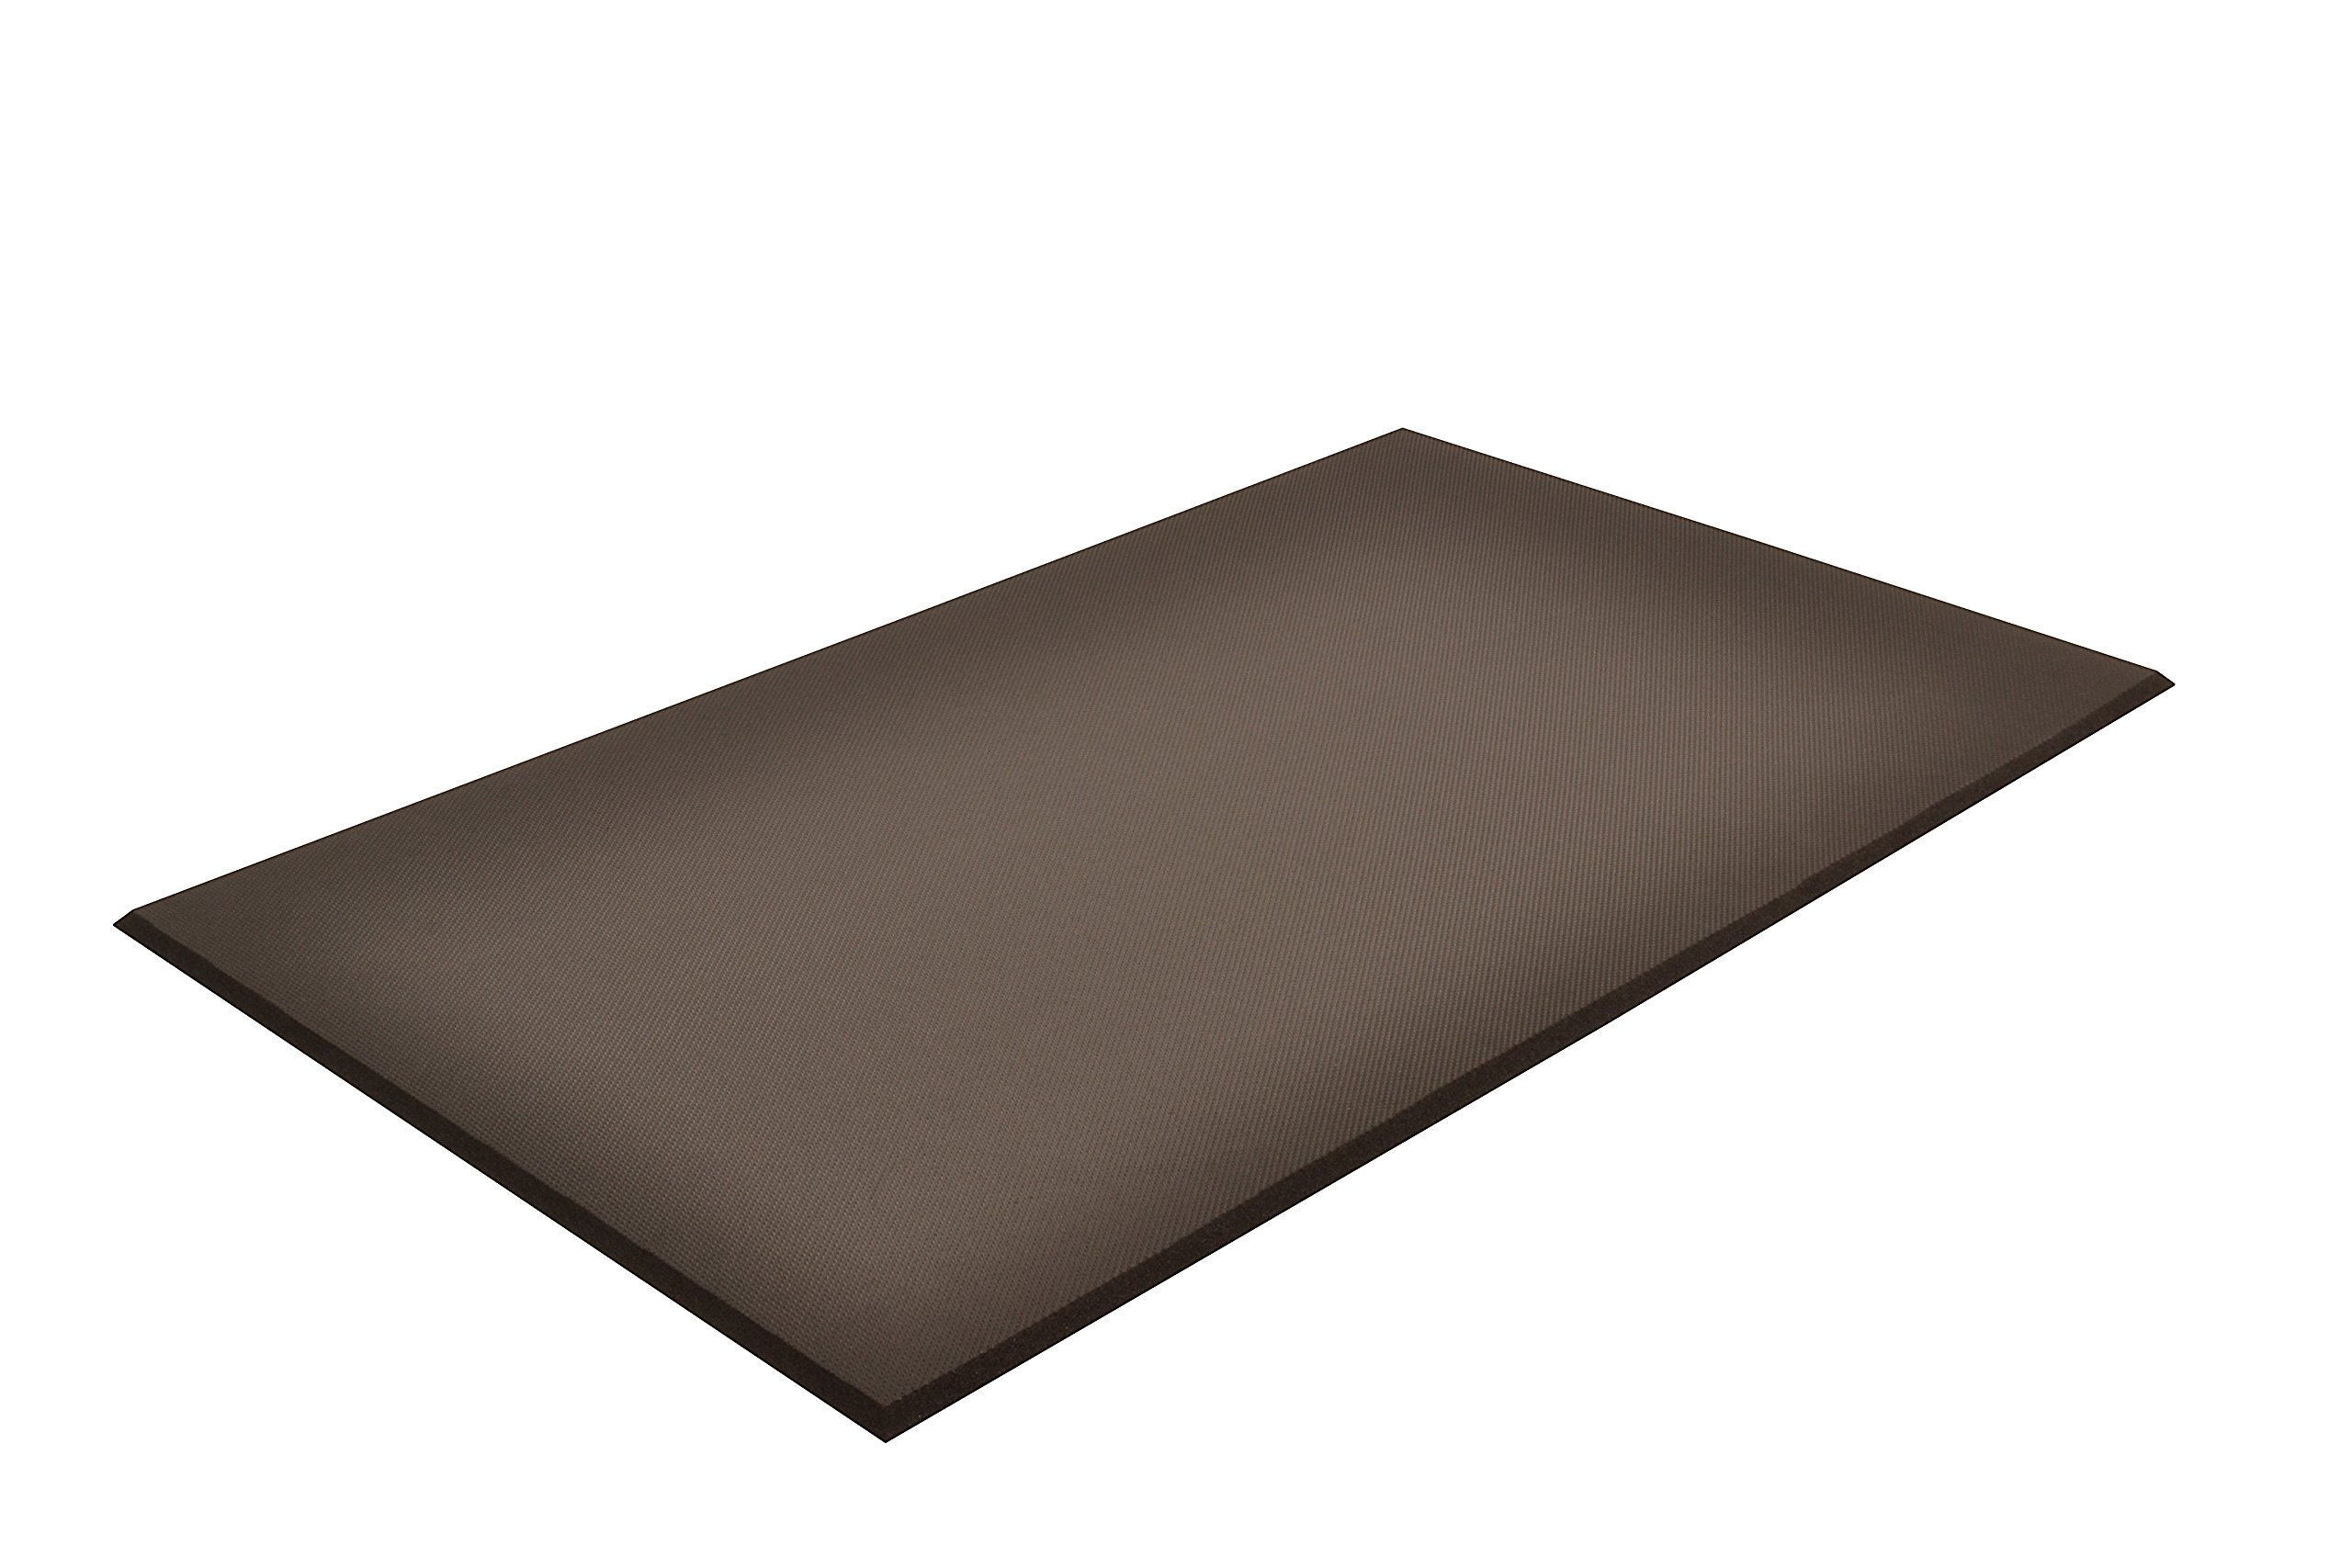 NoTrax T17 Superfoam Safety/Anti-Fatigue Floor Mat, for Dry Areas, 3' Width x 5' Length x 5/8'' Thickness, Black by NoTrax (Image #1)